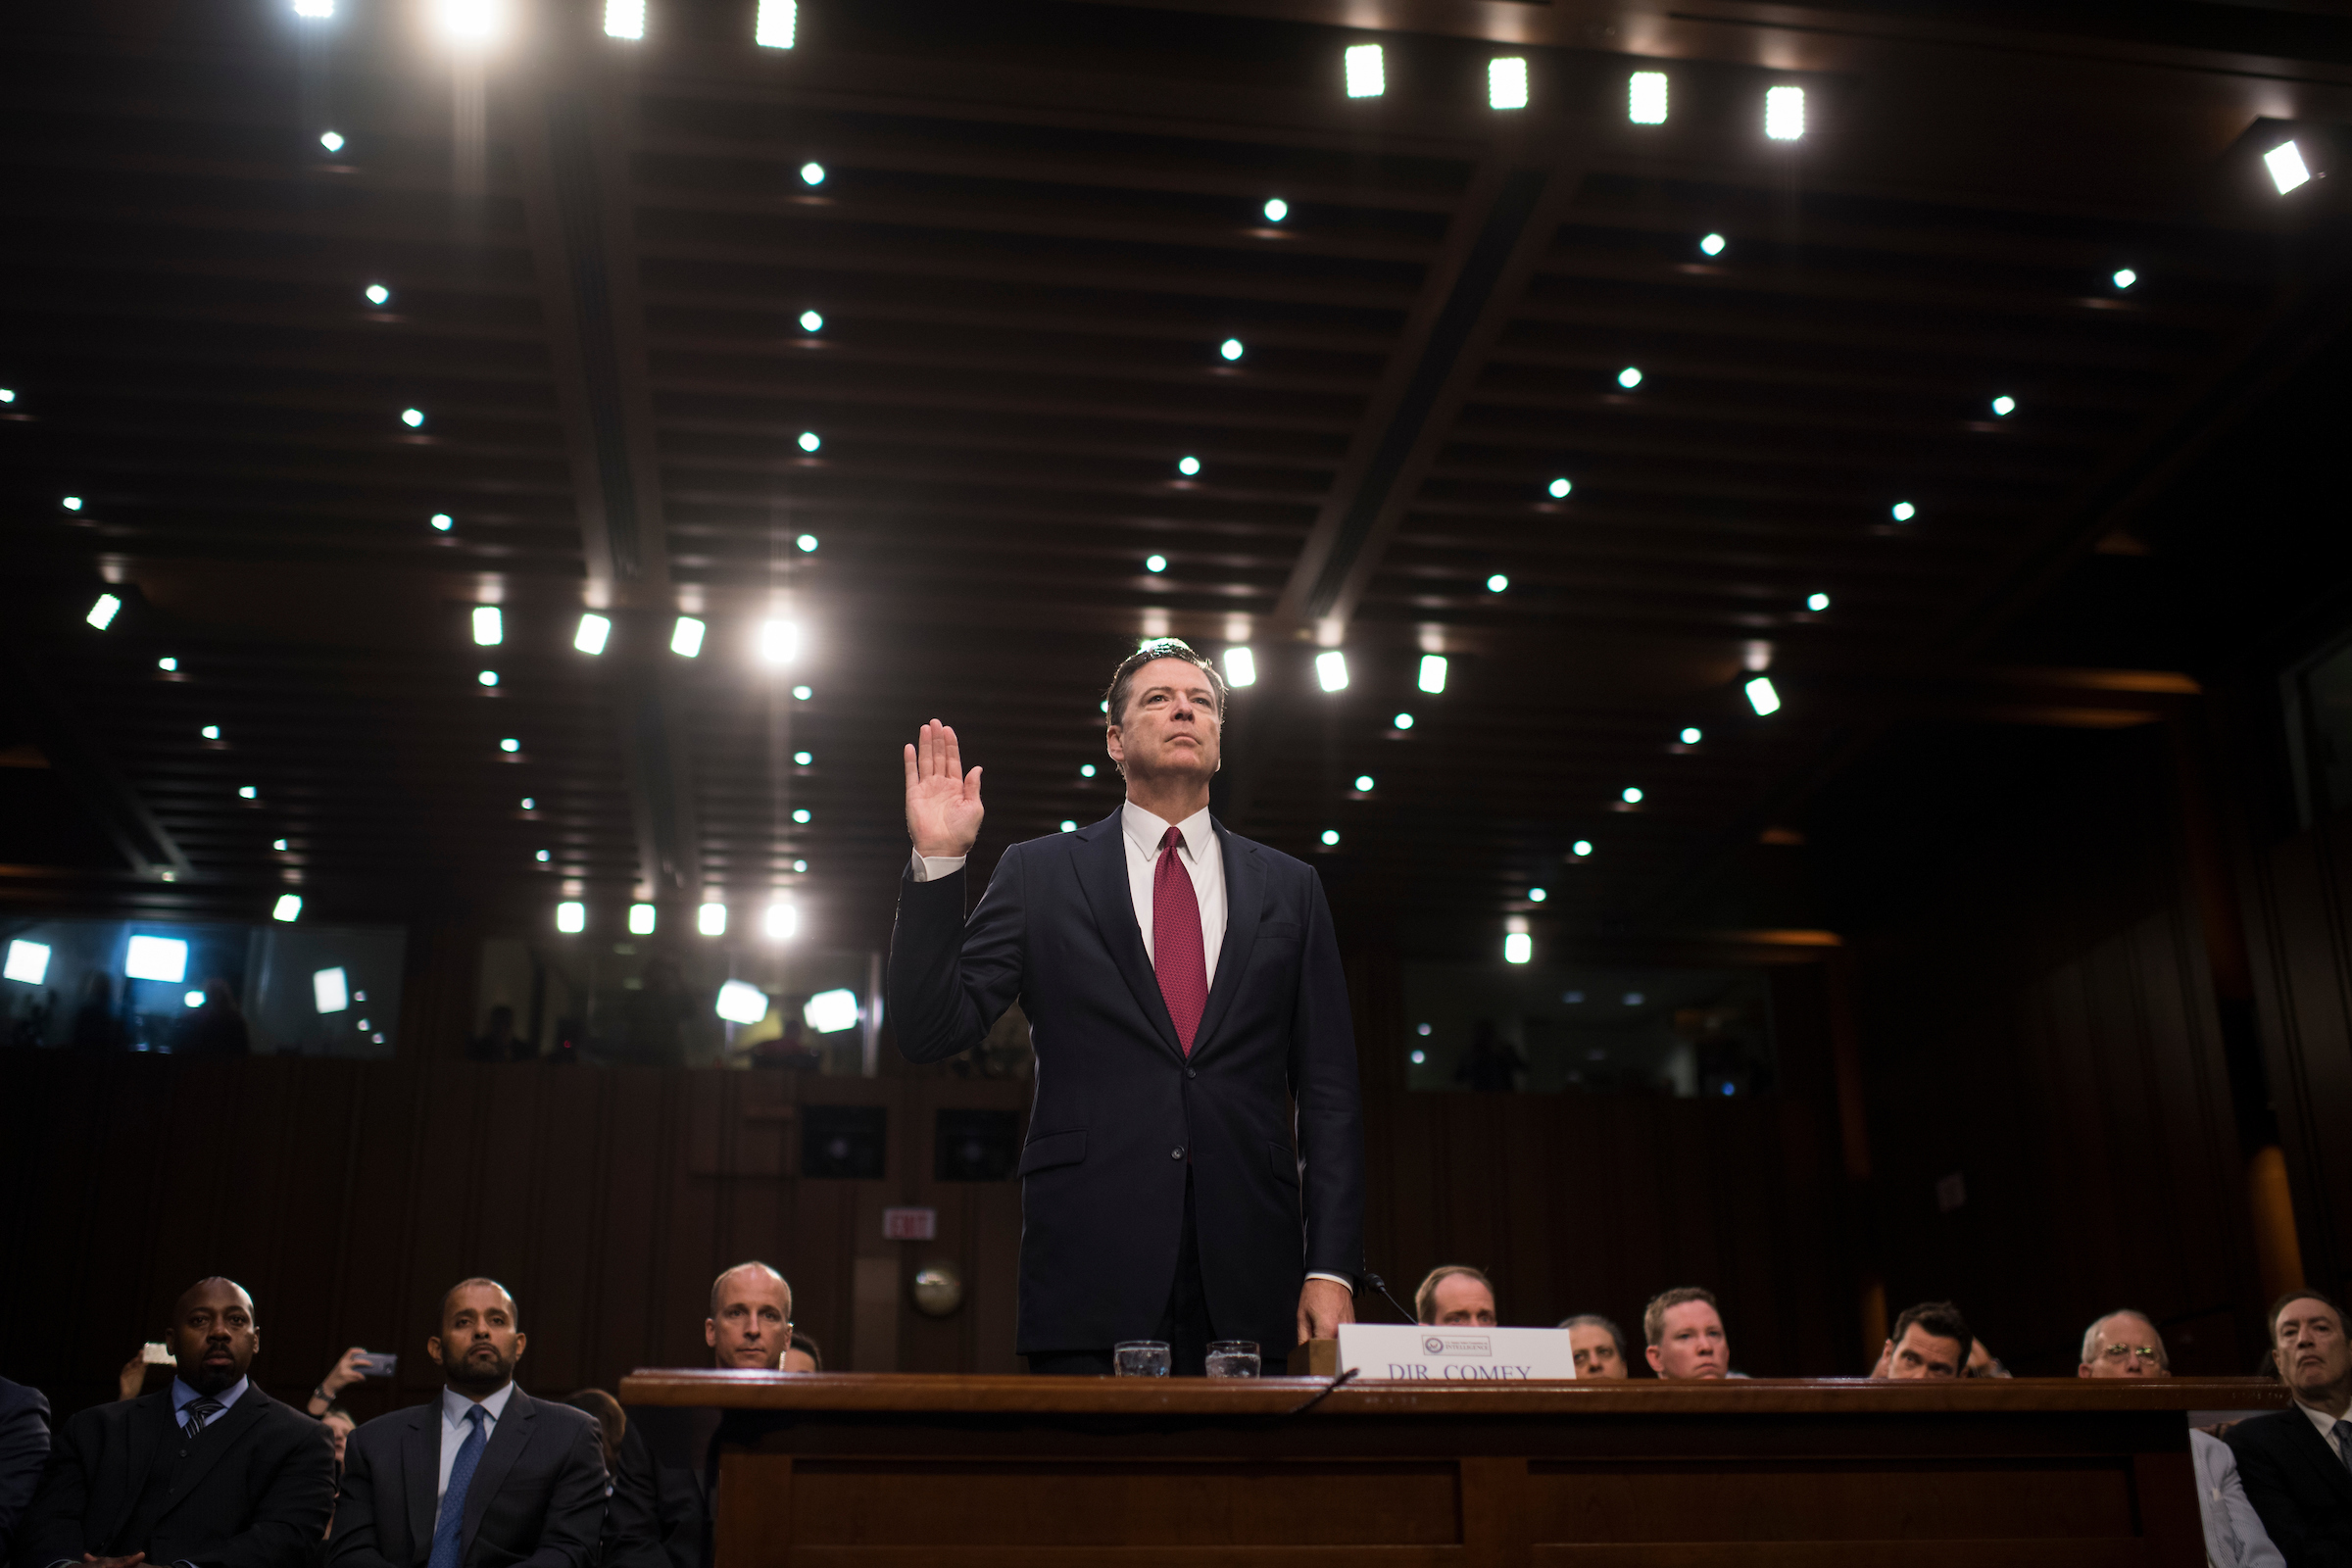 UNITED STATES - JUNE 8: Former FBI Director James Comey is sworn in before testifying about President Trump's possible campaign ties to Russia during a Senate Intelligence Committee hearing on June 8, 2017. (Photo By Tom Williams/CQ Roll Call)